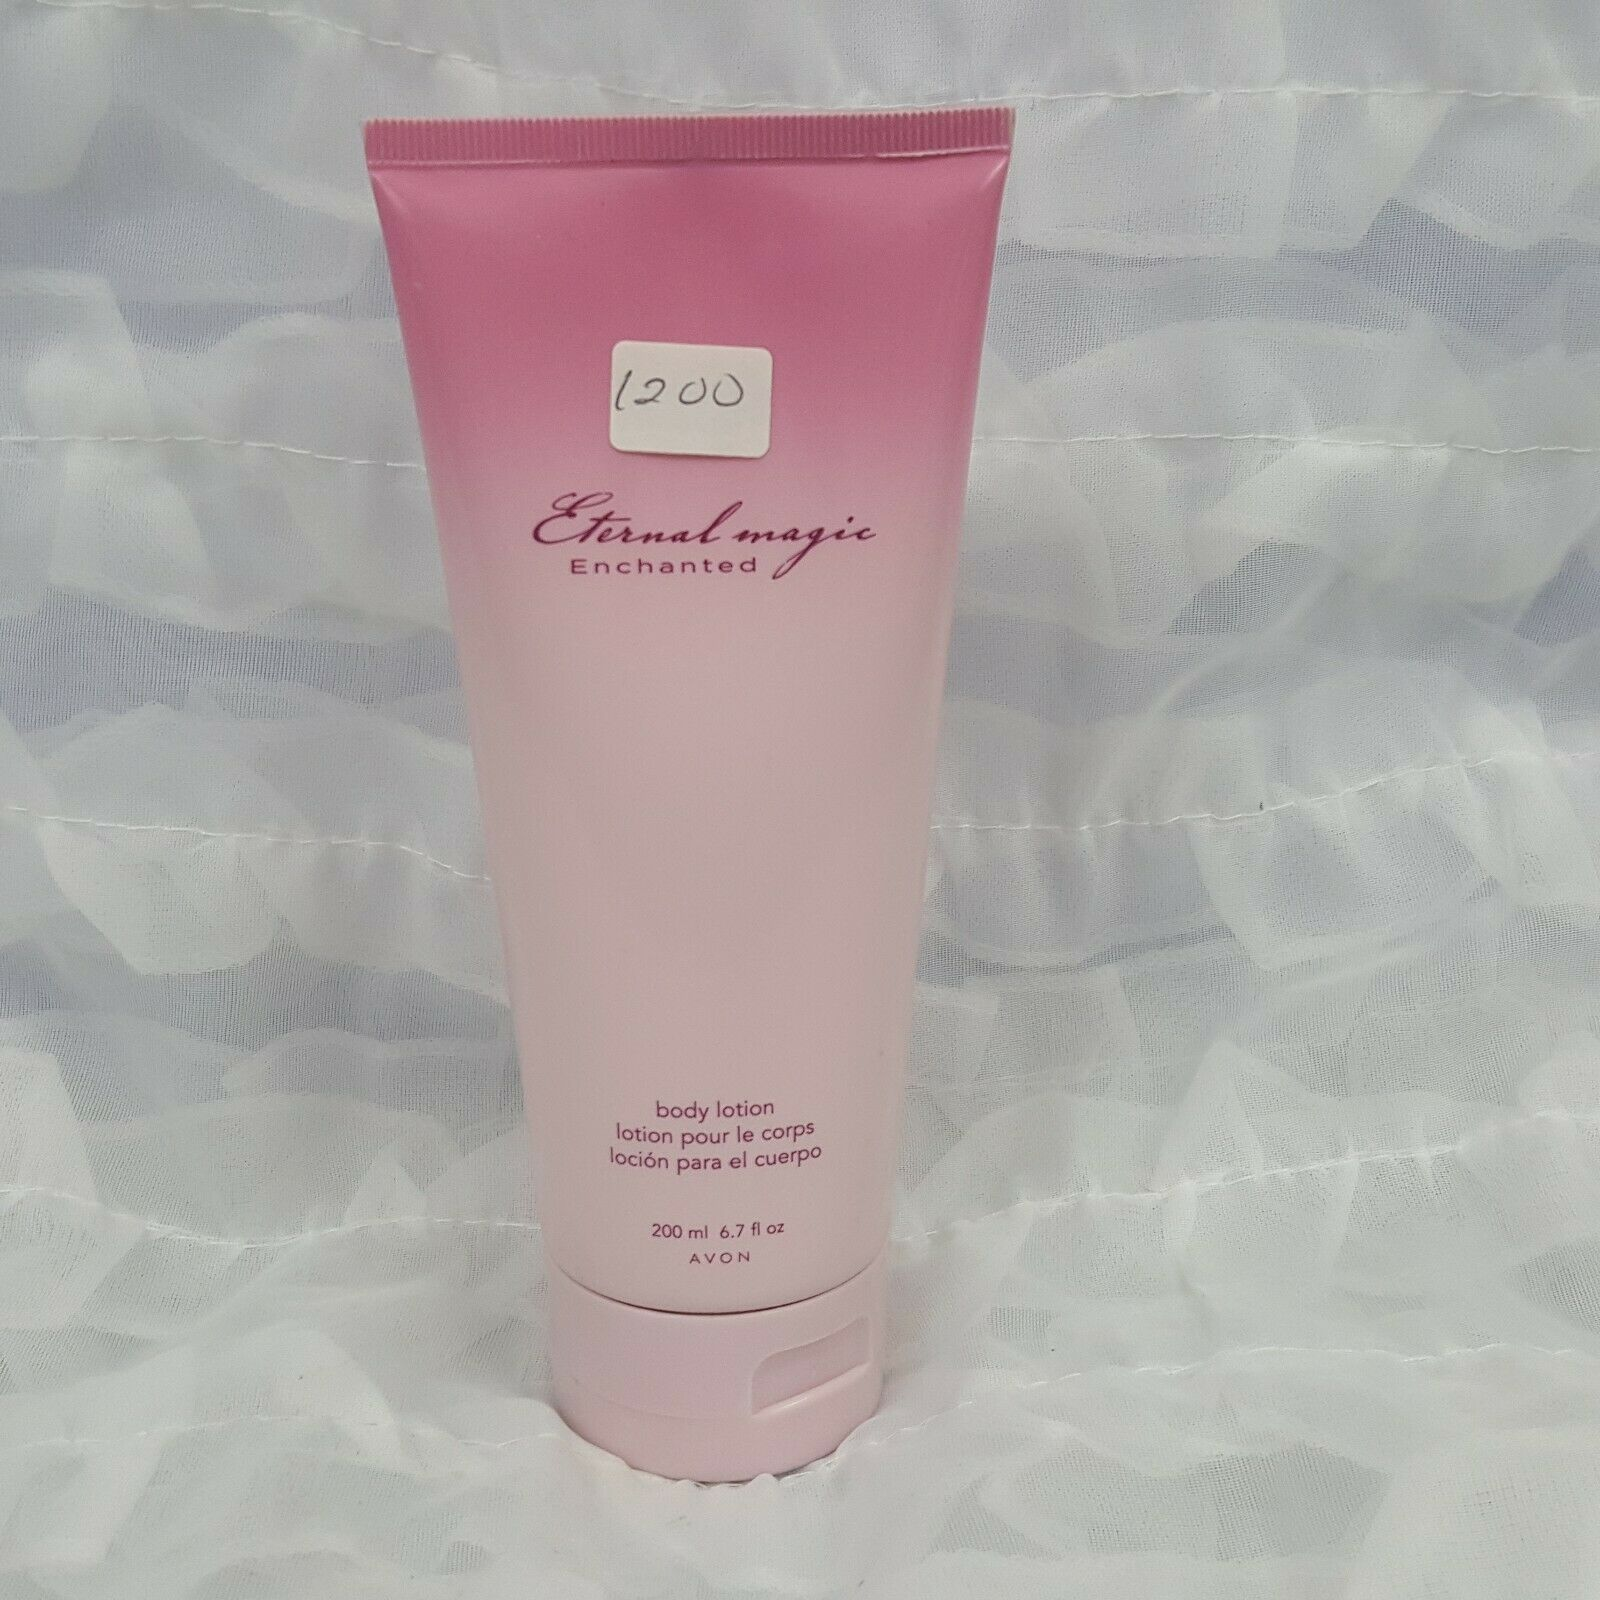 Primary image for Avon ETERNAL MAGIC ENCHANTED Body Lotion 6.7 fl.oz. Discontinued Scent